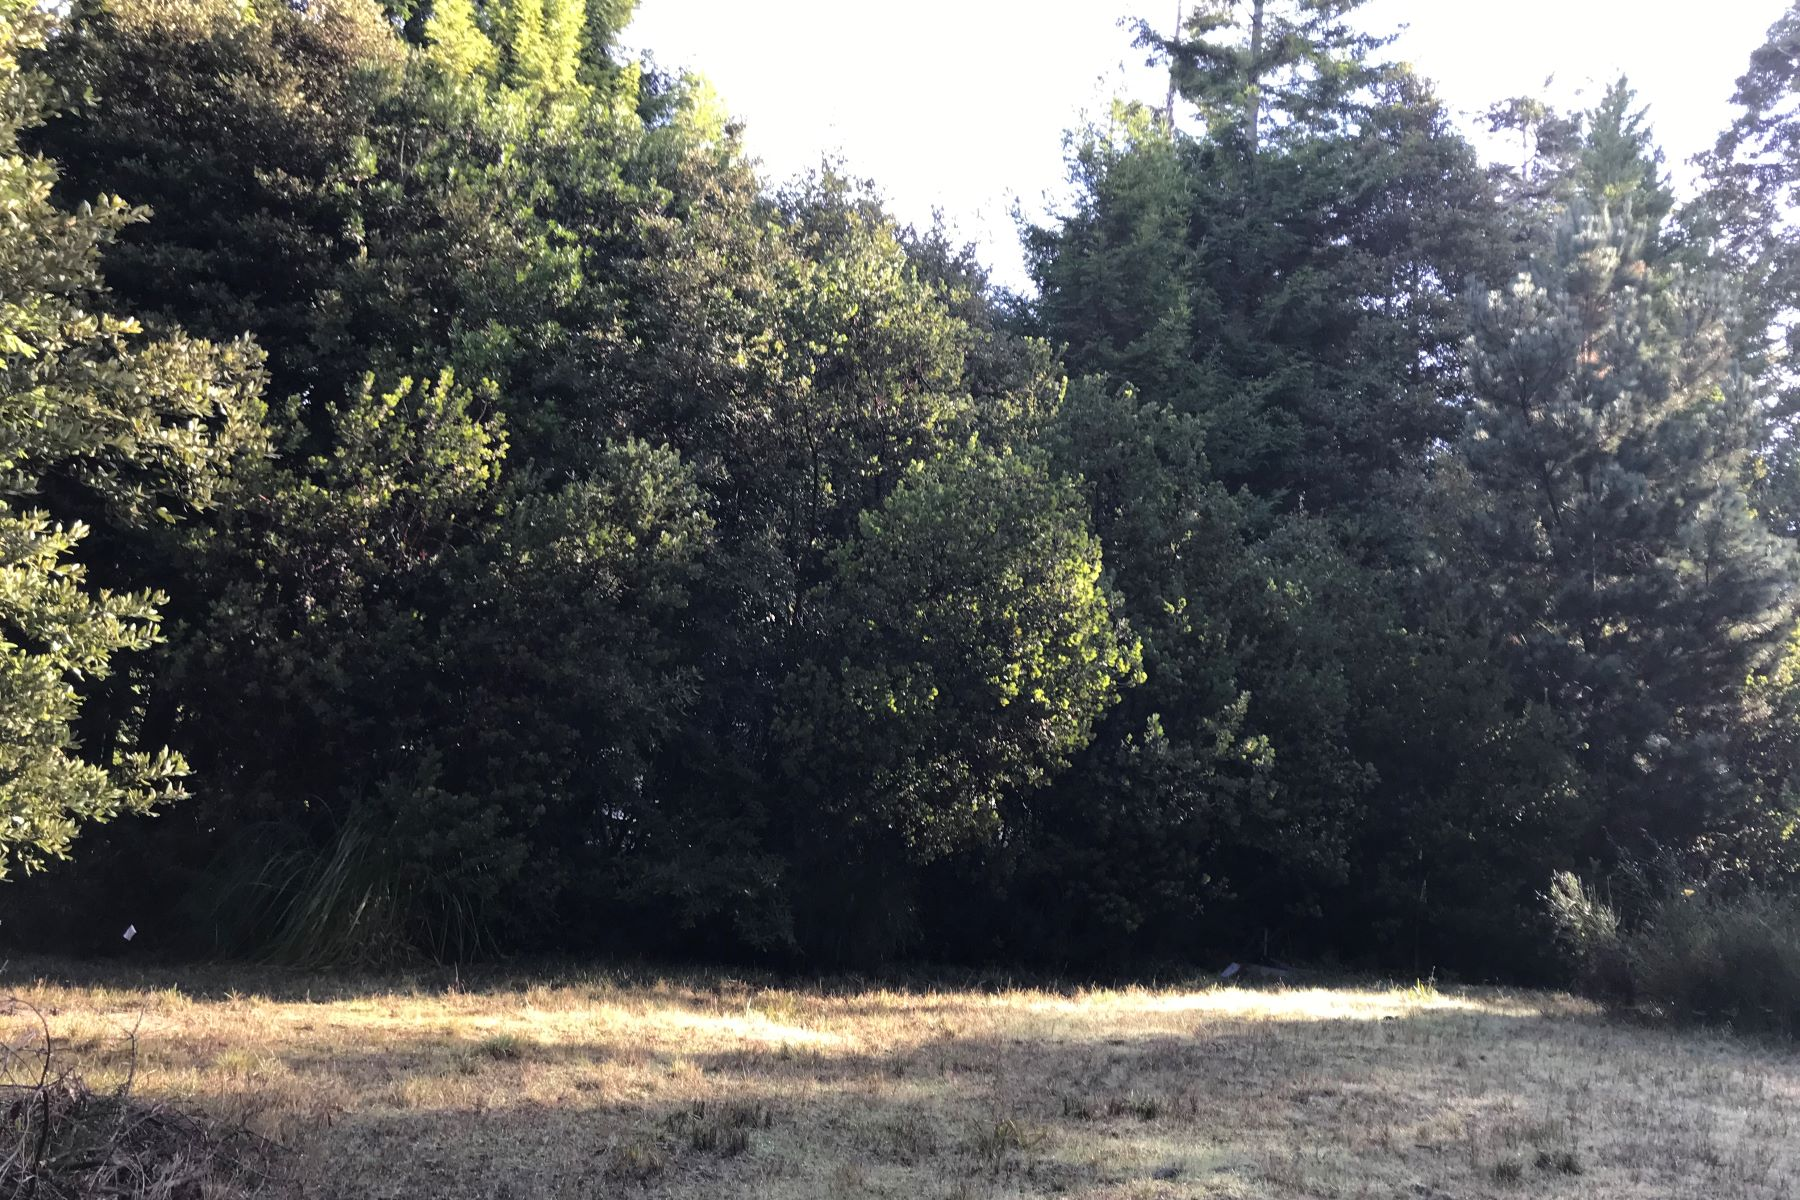 Property for Sale at Park-Like Setting 15750 Shane Drive Fort Bragg, California 95437 United States